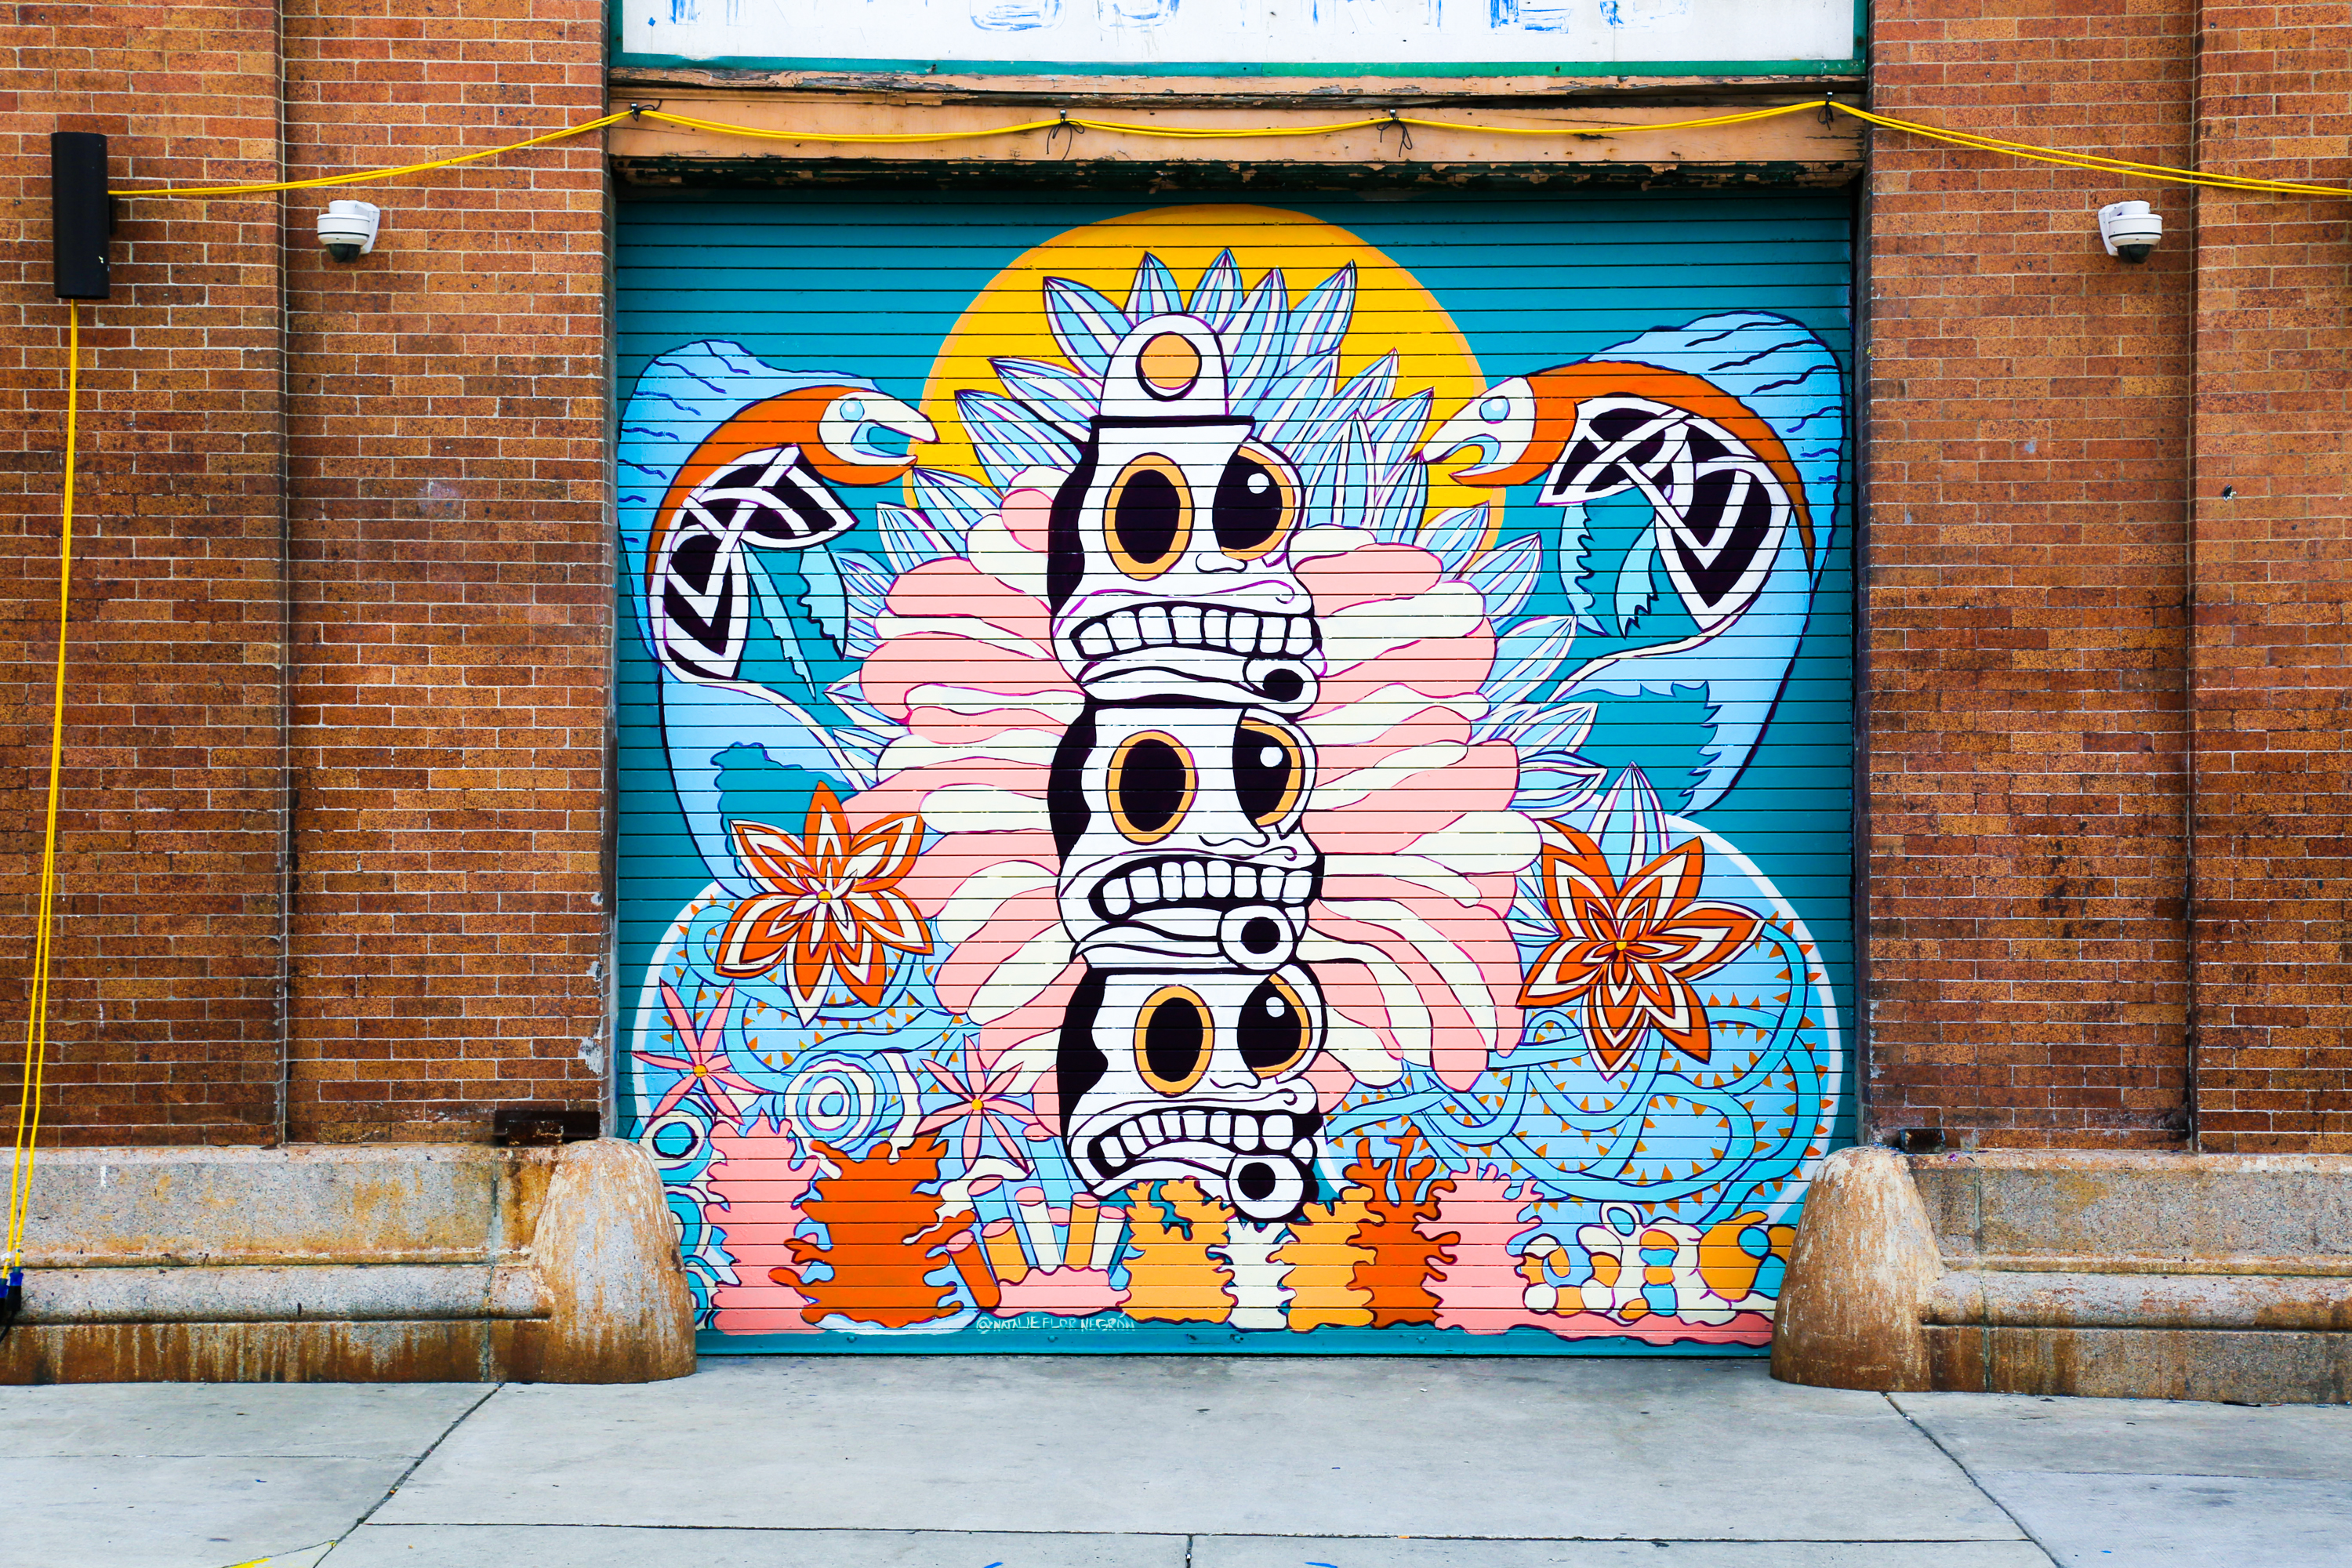 Streets Dept | Discovering art on the streets of Philadelphia (Est